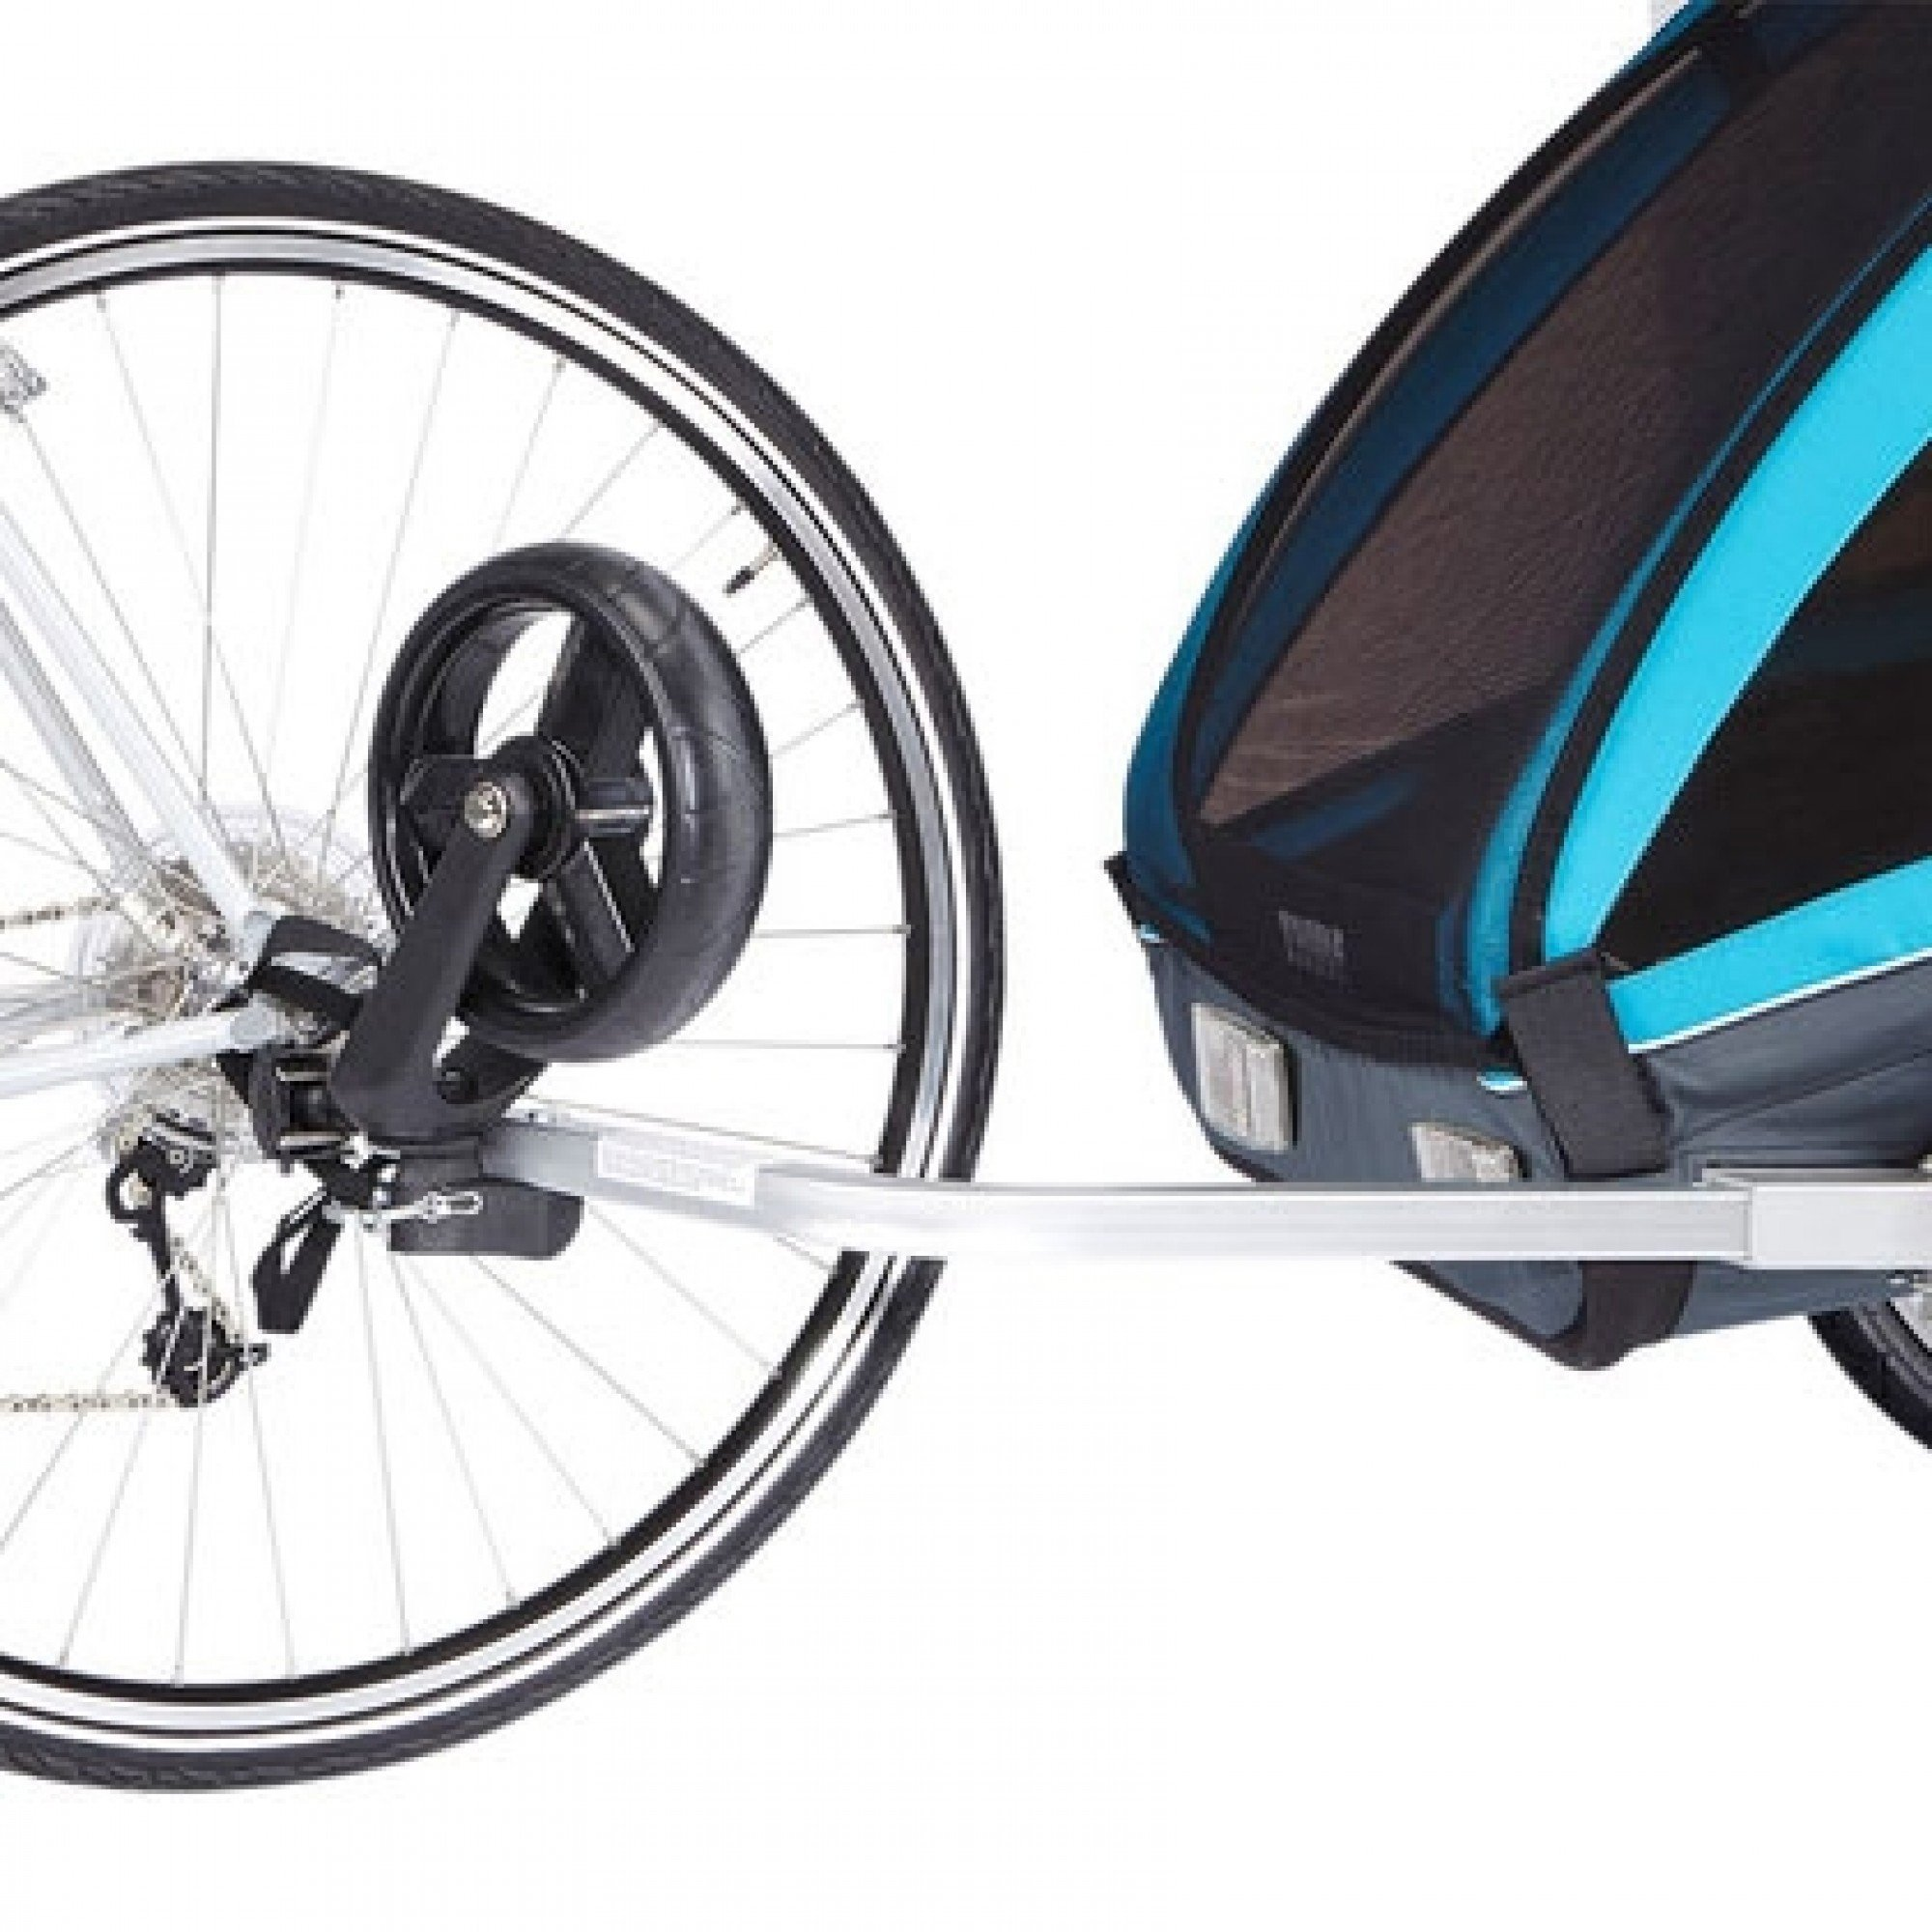 Thule Chariot Coaster XT Bicycle Trailer & Stroller